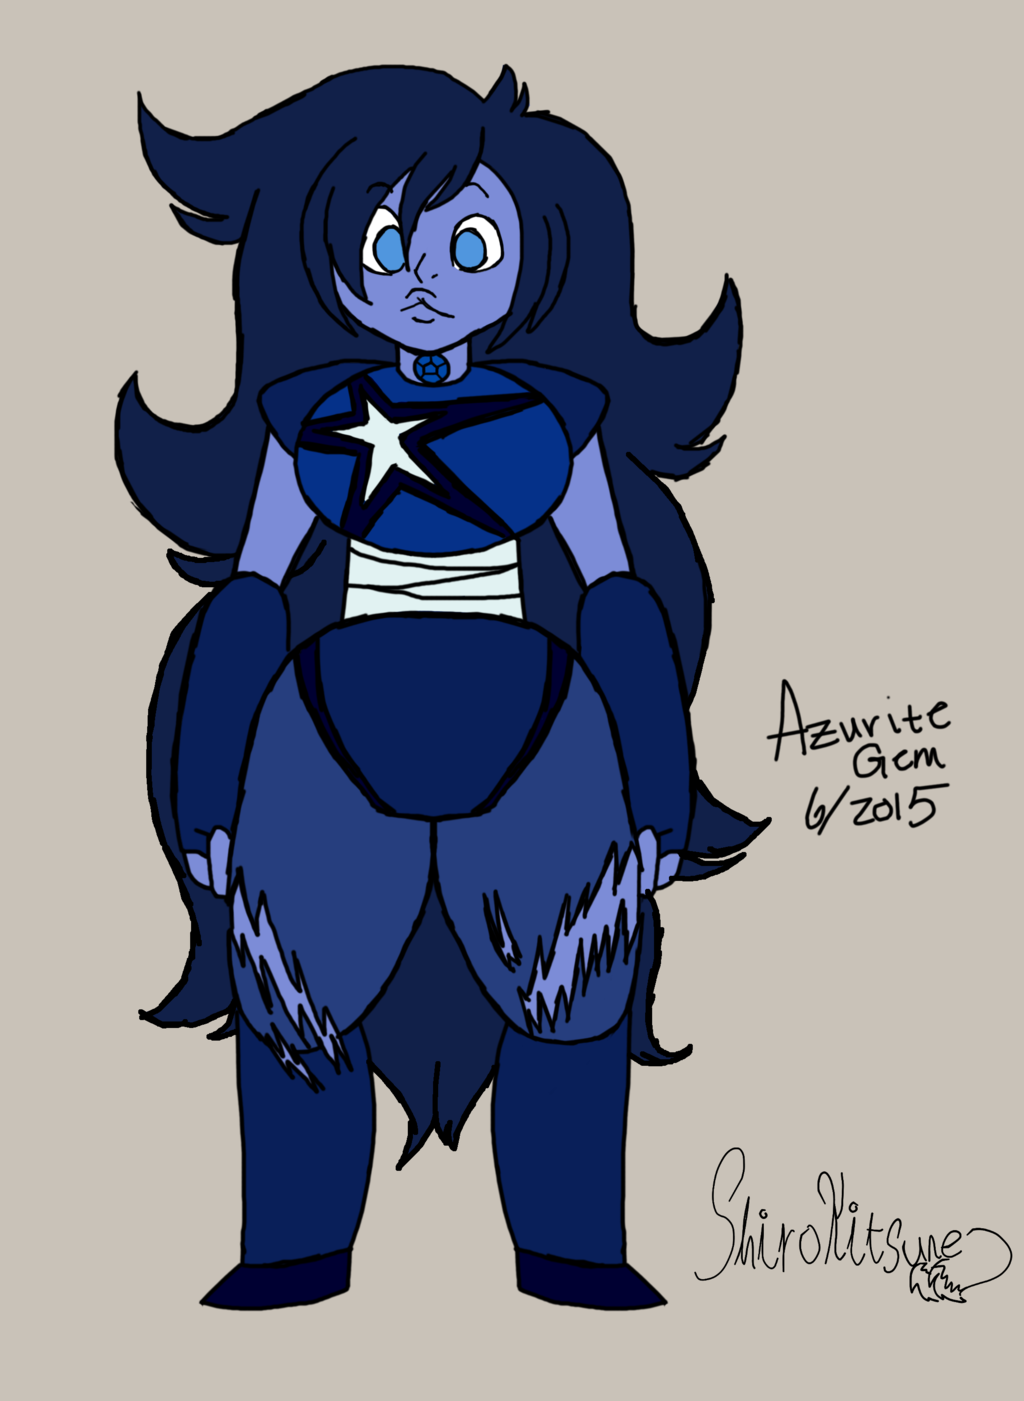 Featured image: Gemsona Azurite